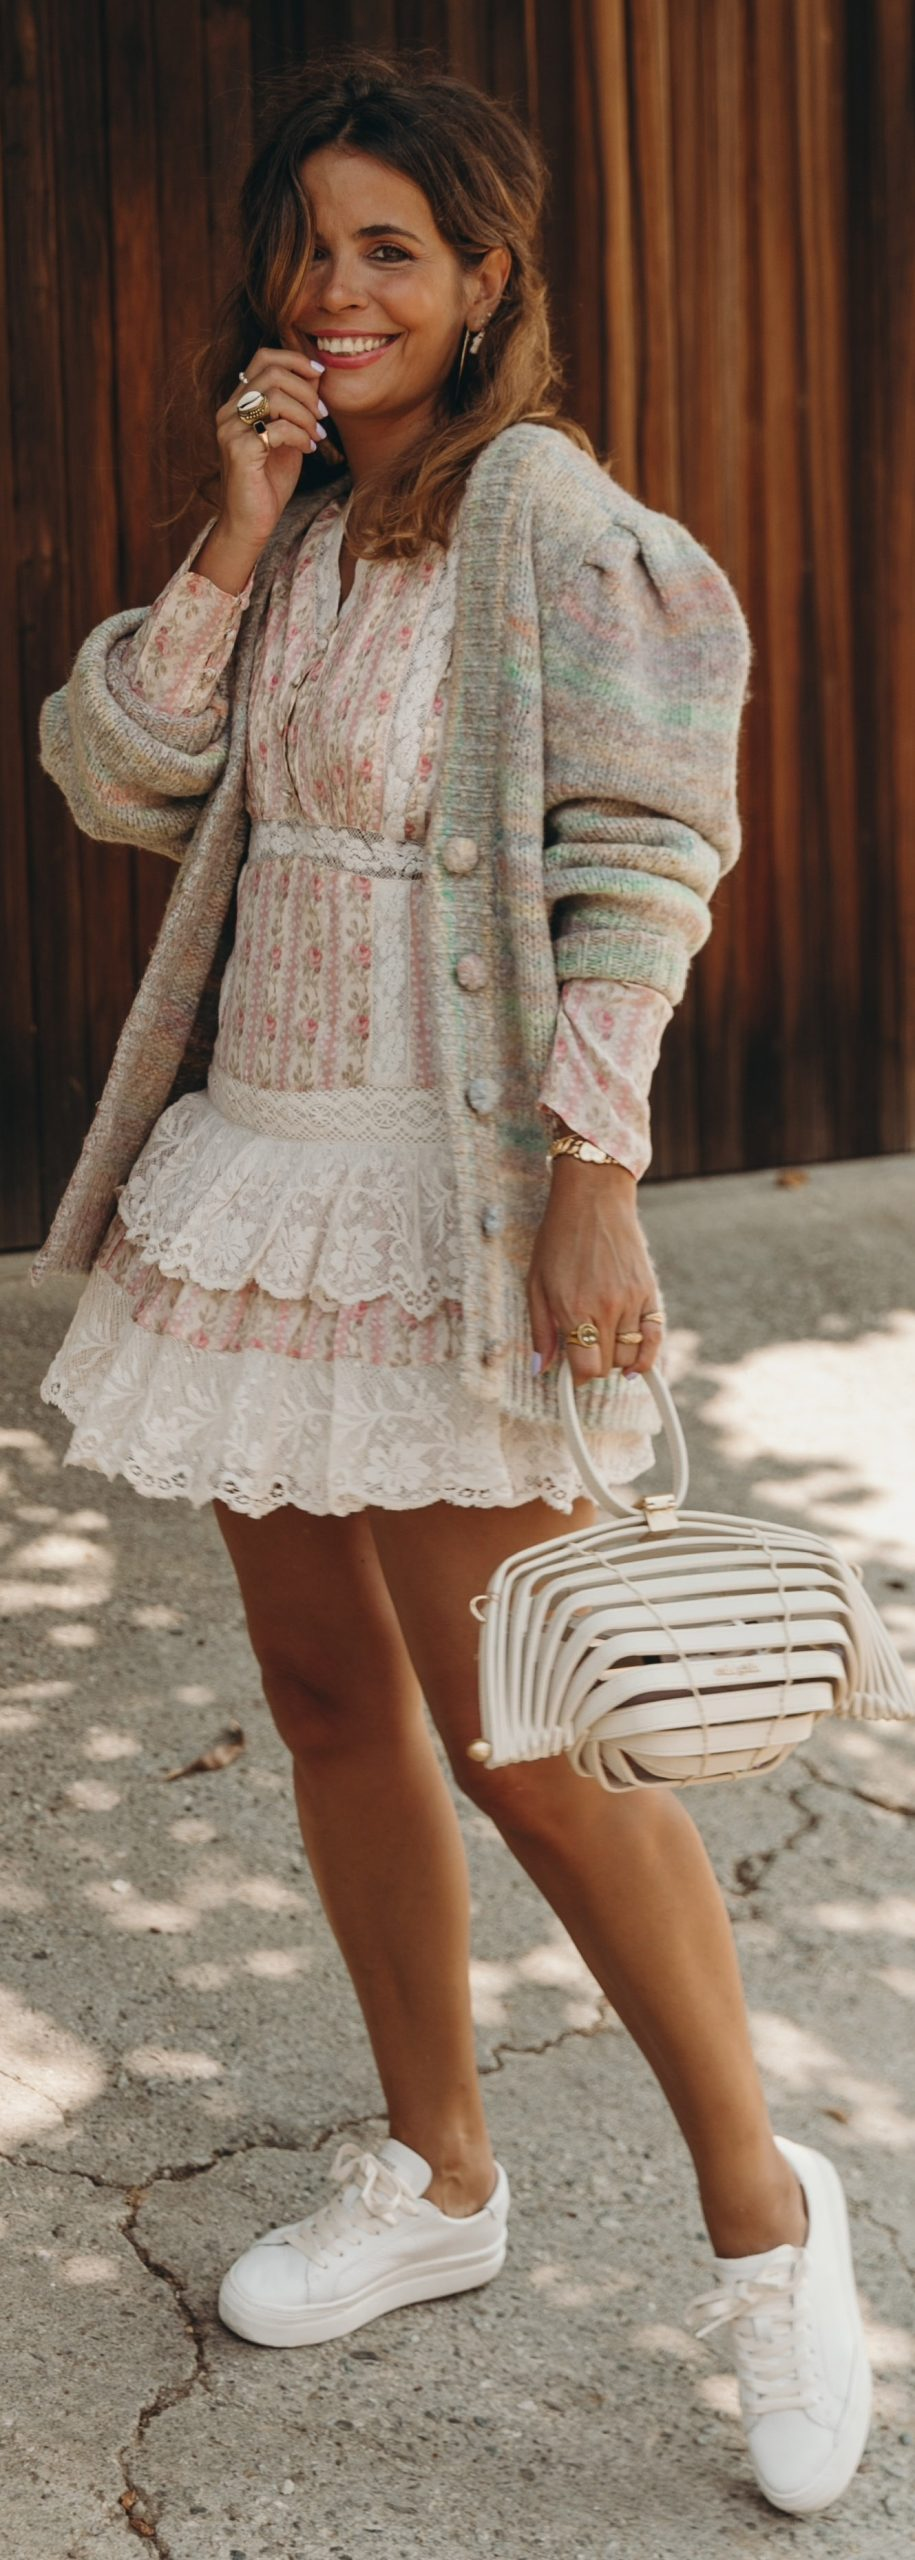 Vintage Fall Outfit With Pretty Dress Styled with a cardigan